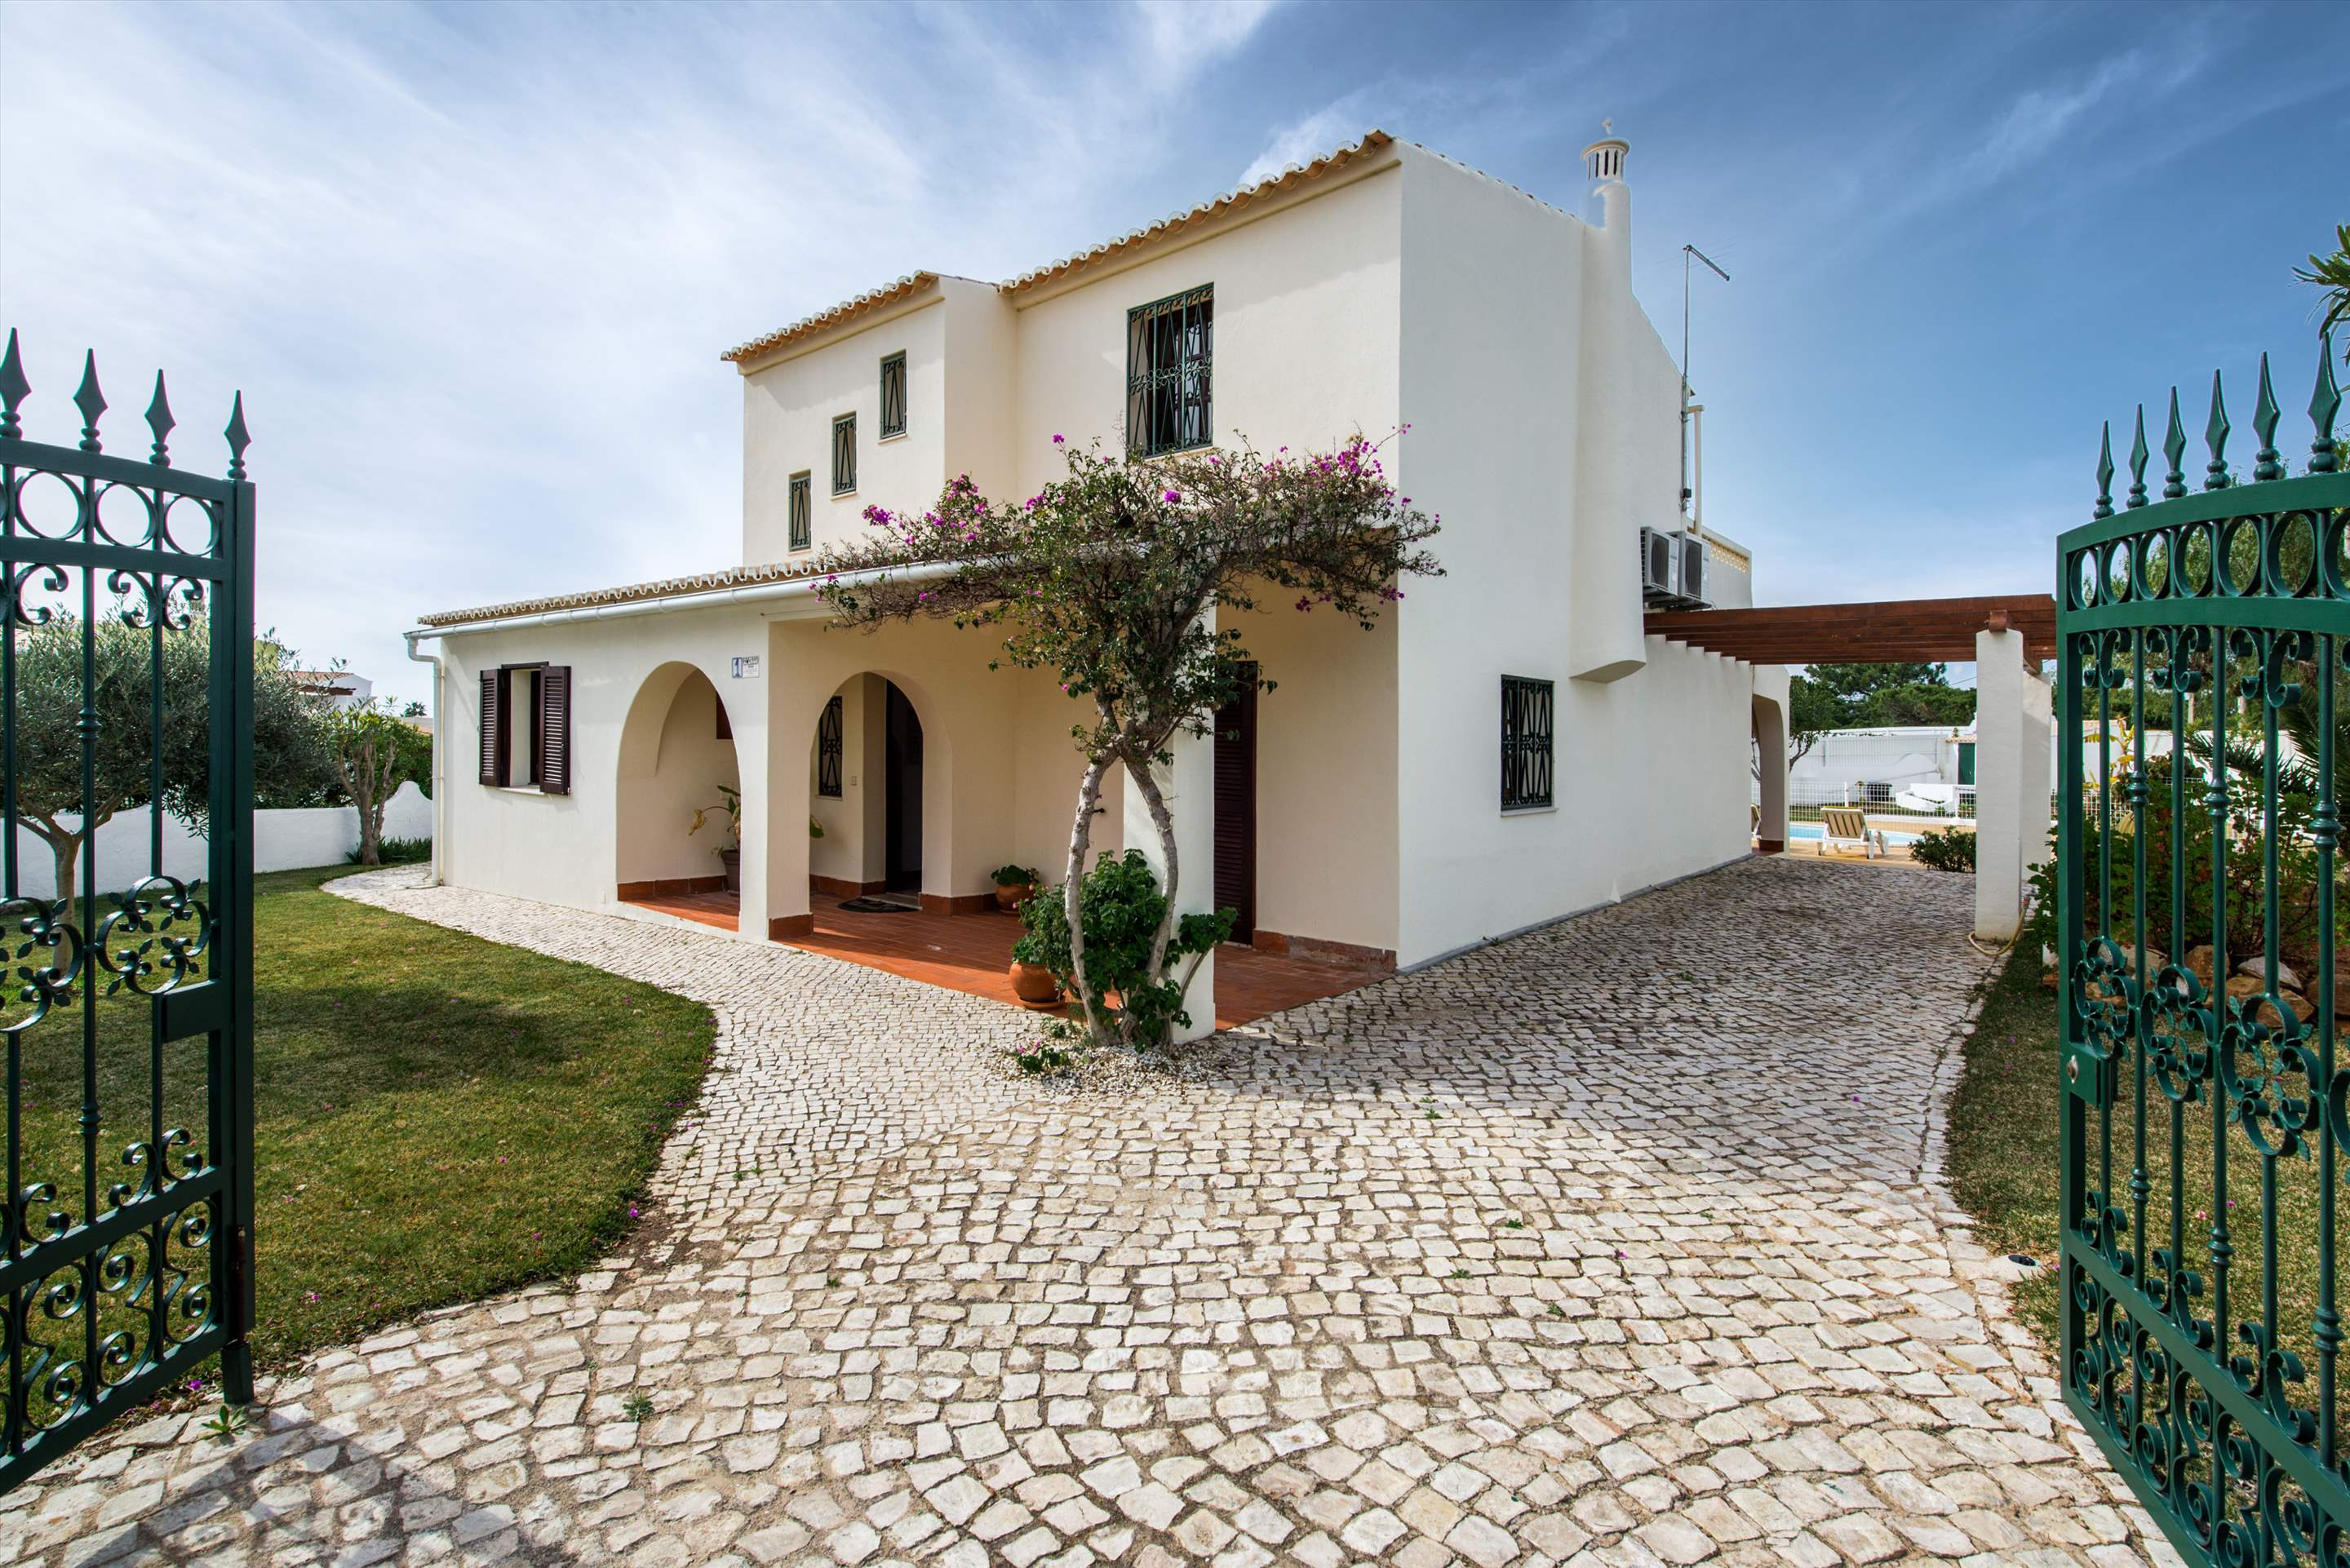 Casa Isabel, 5-6 persons rate, 3 bedroom villa in Gale, Vale da Parra and Guia, Algarve Photo #8